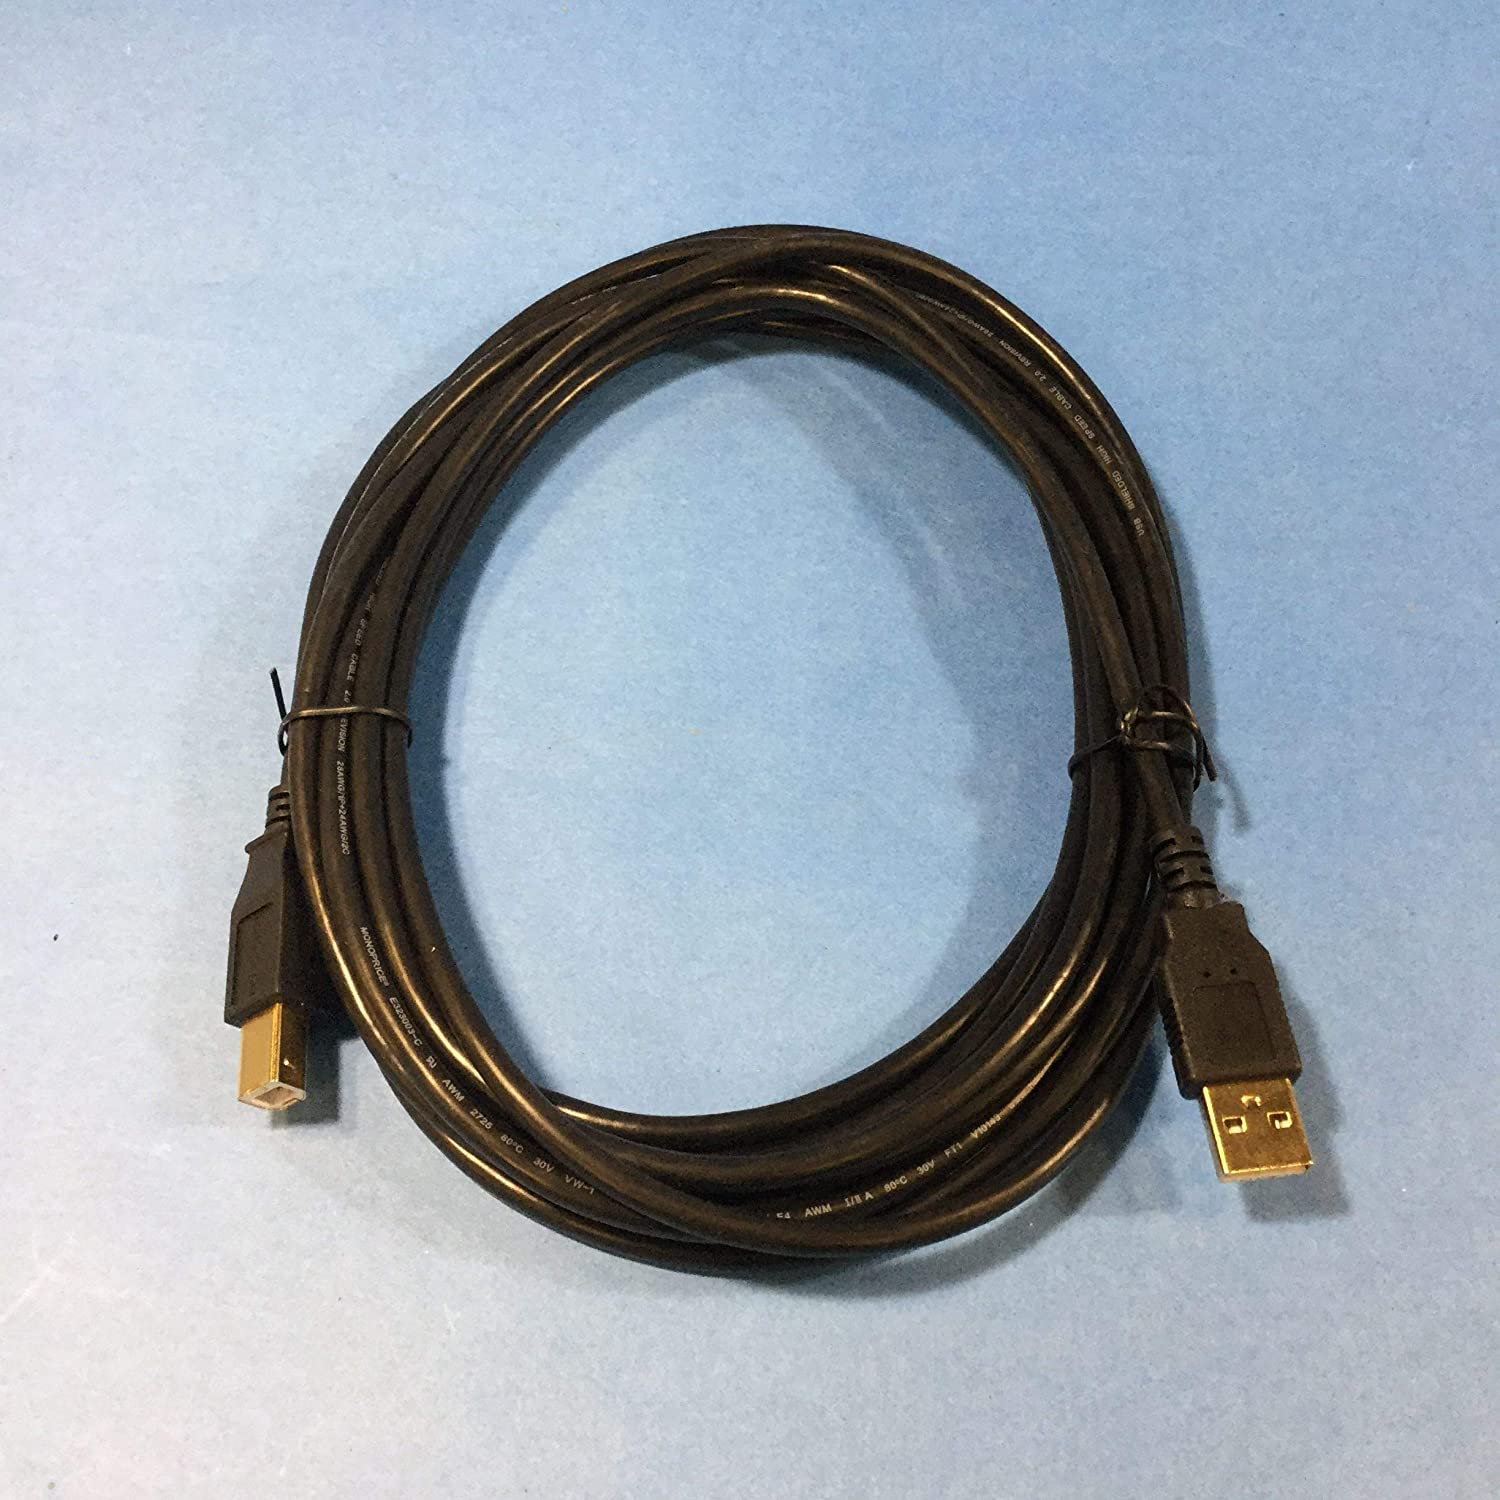 Monoprice 15-Feet USB 2.0 A Male to B Male 28//24AWG Cable Gold Plated 105440 ,Black